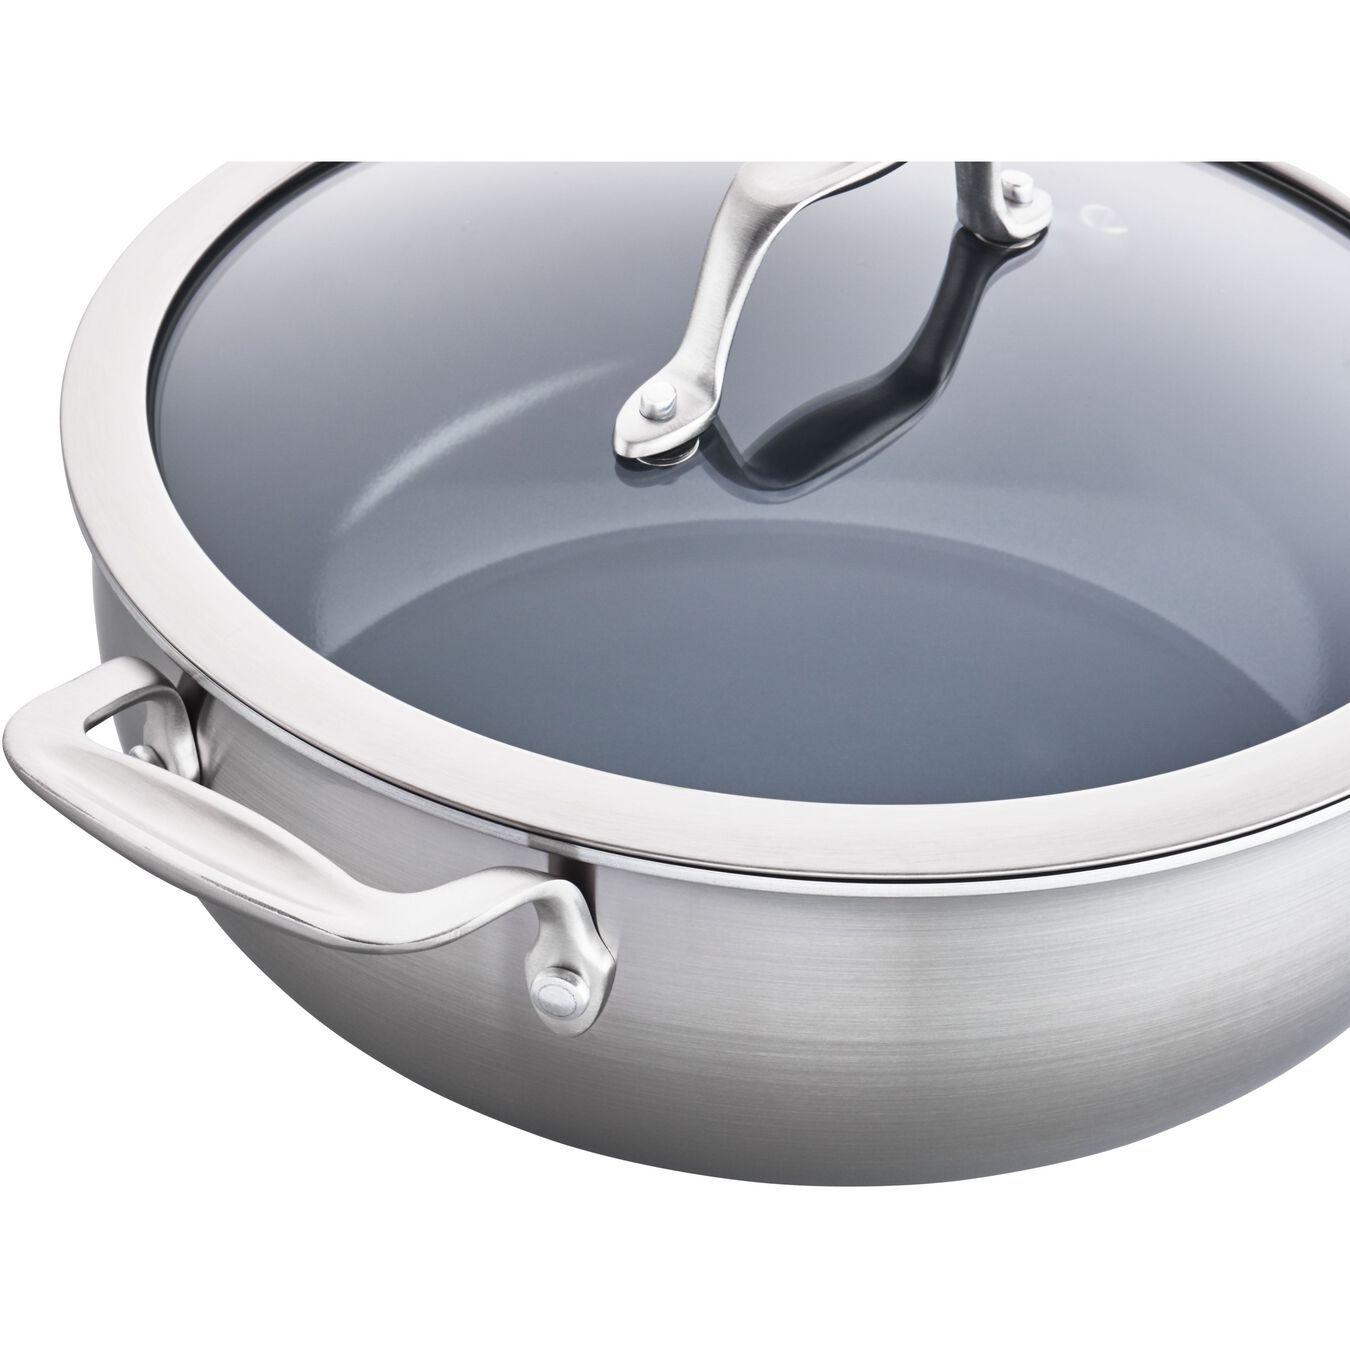 10-inch Saute pan, 18/10 Stainless Steel ,,large 3